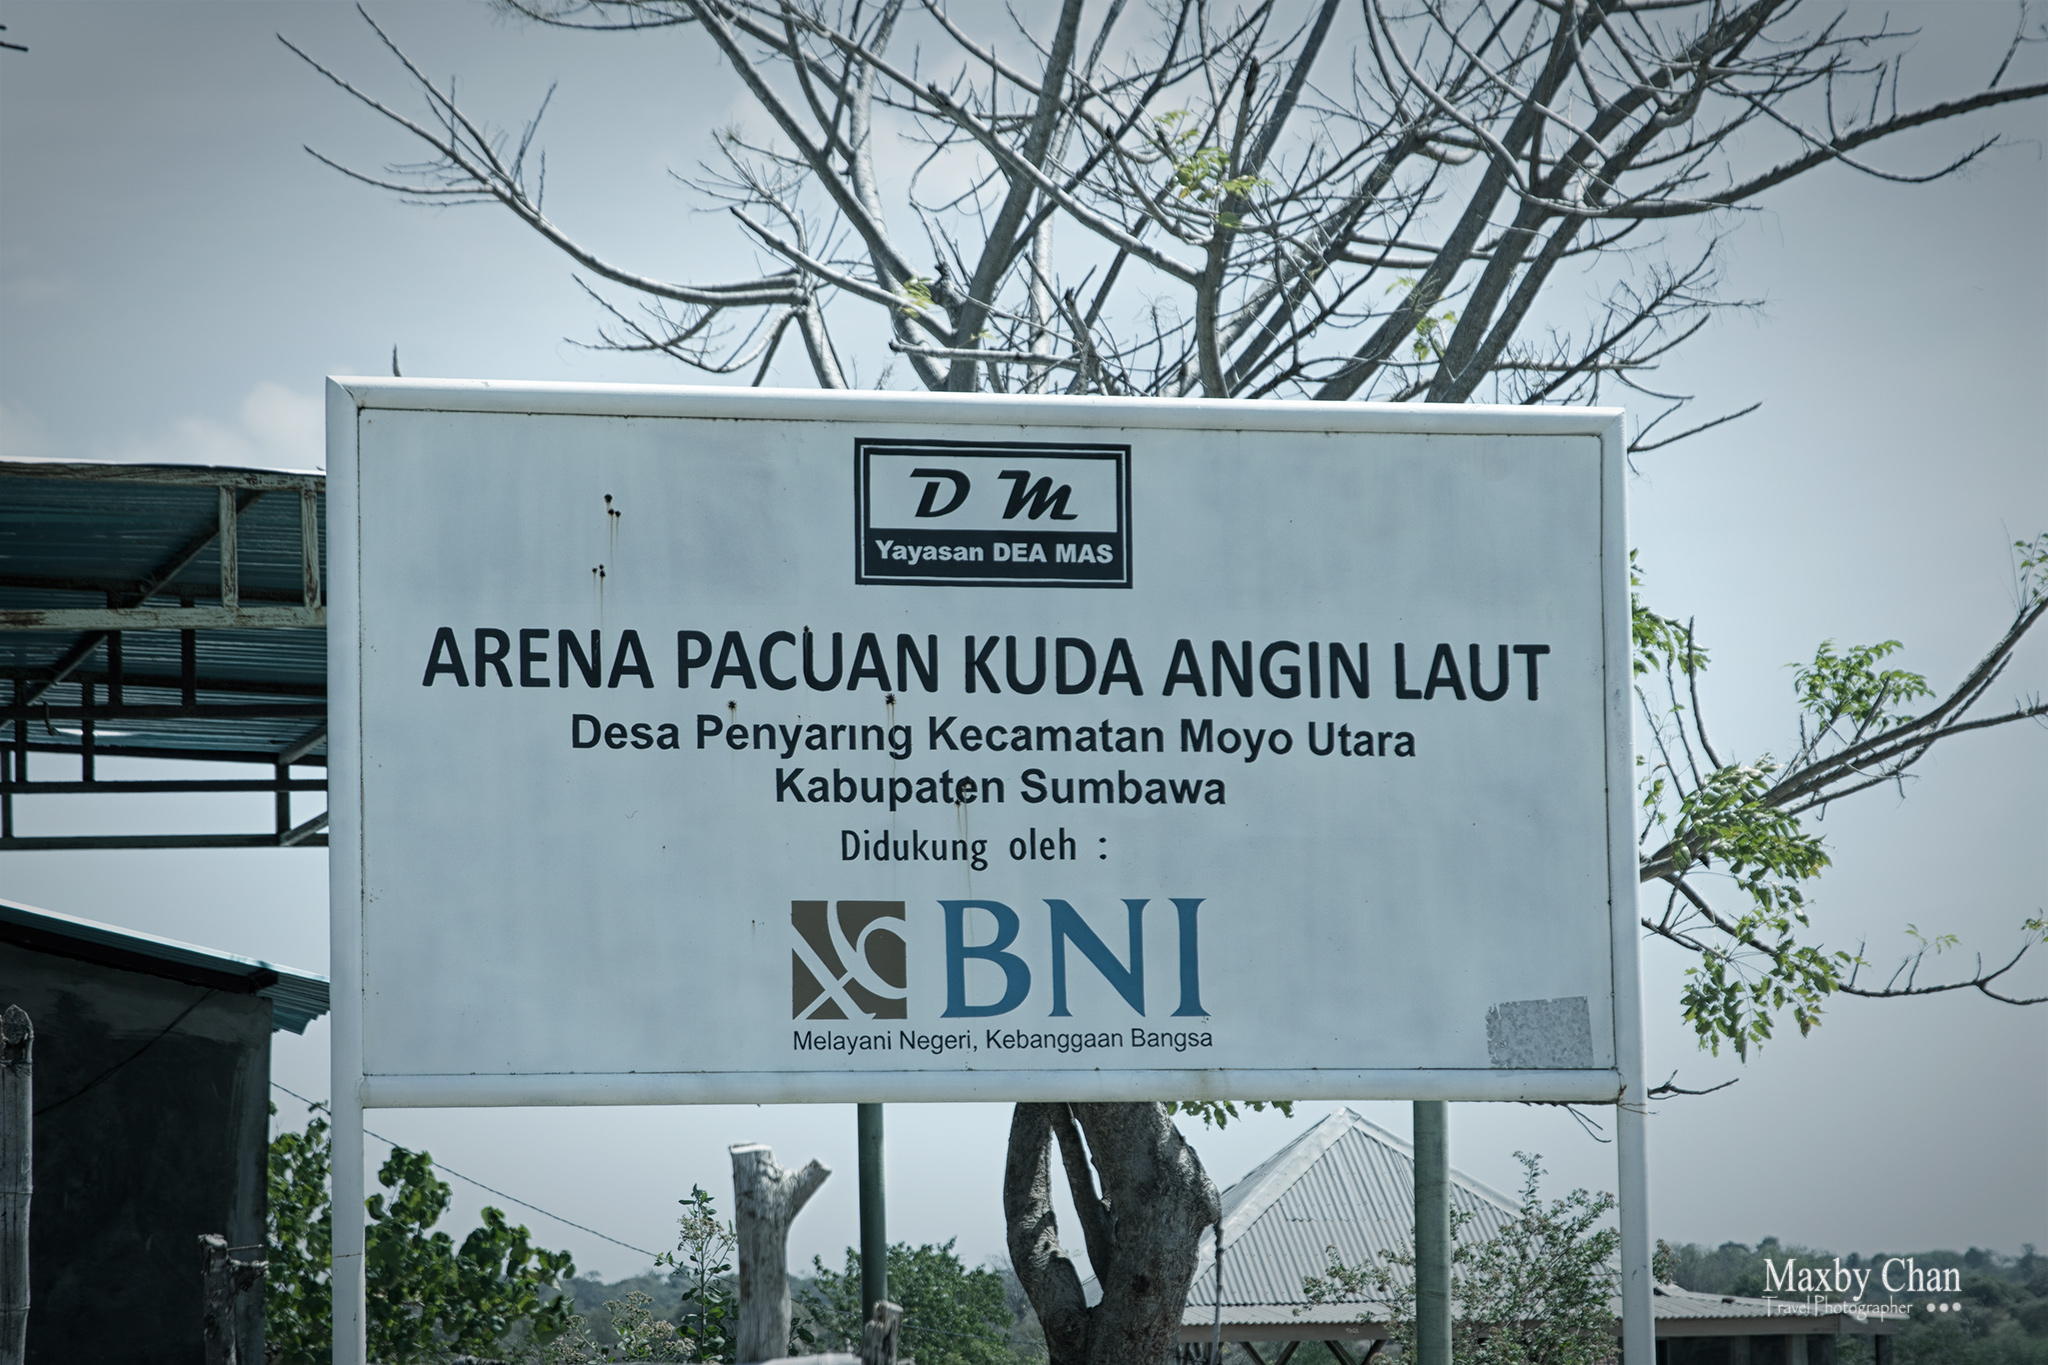 A race course donated by BNI